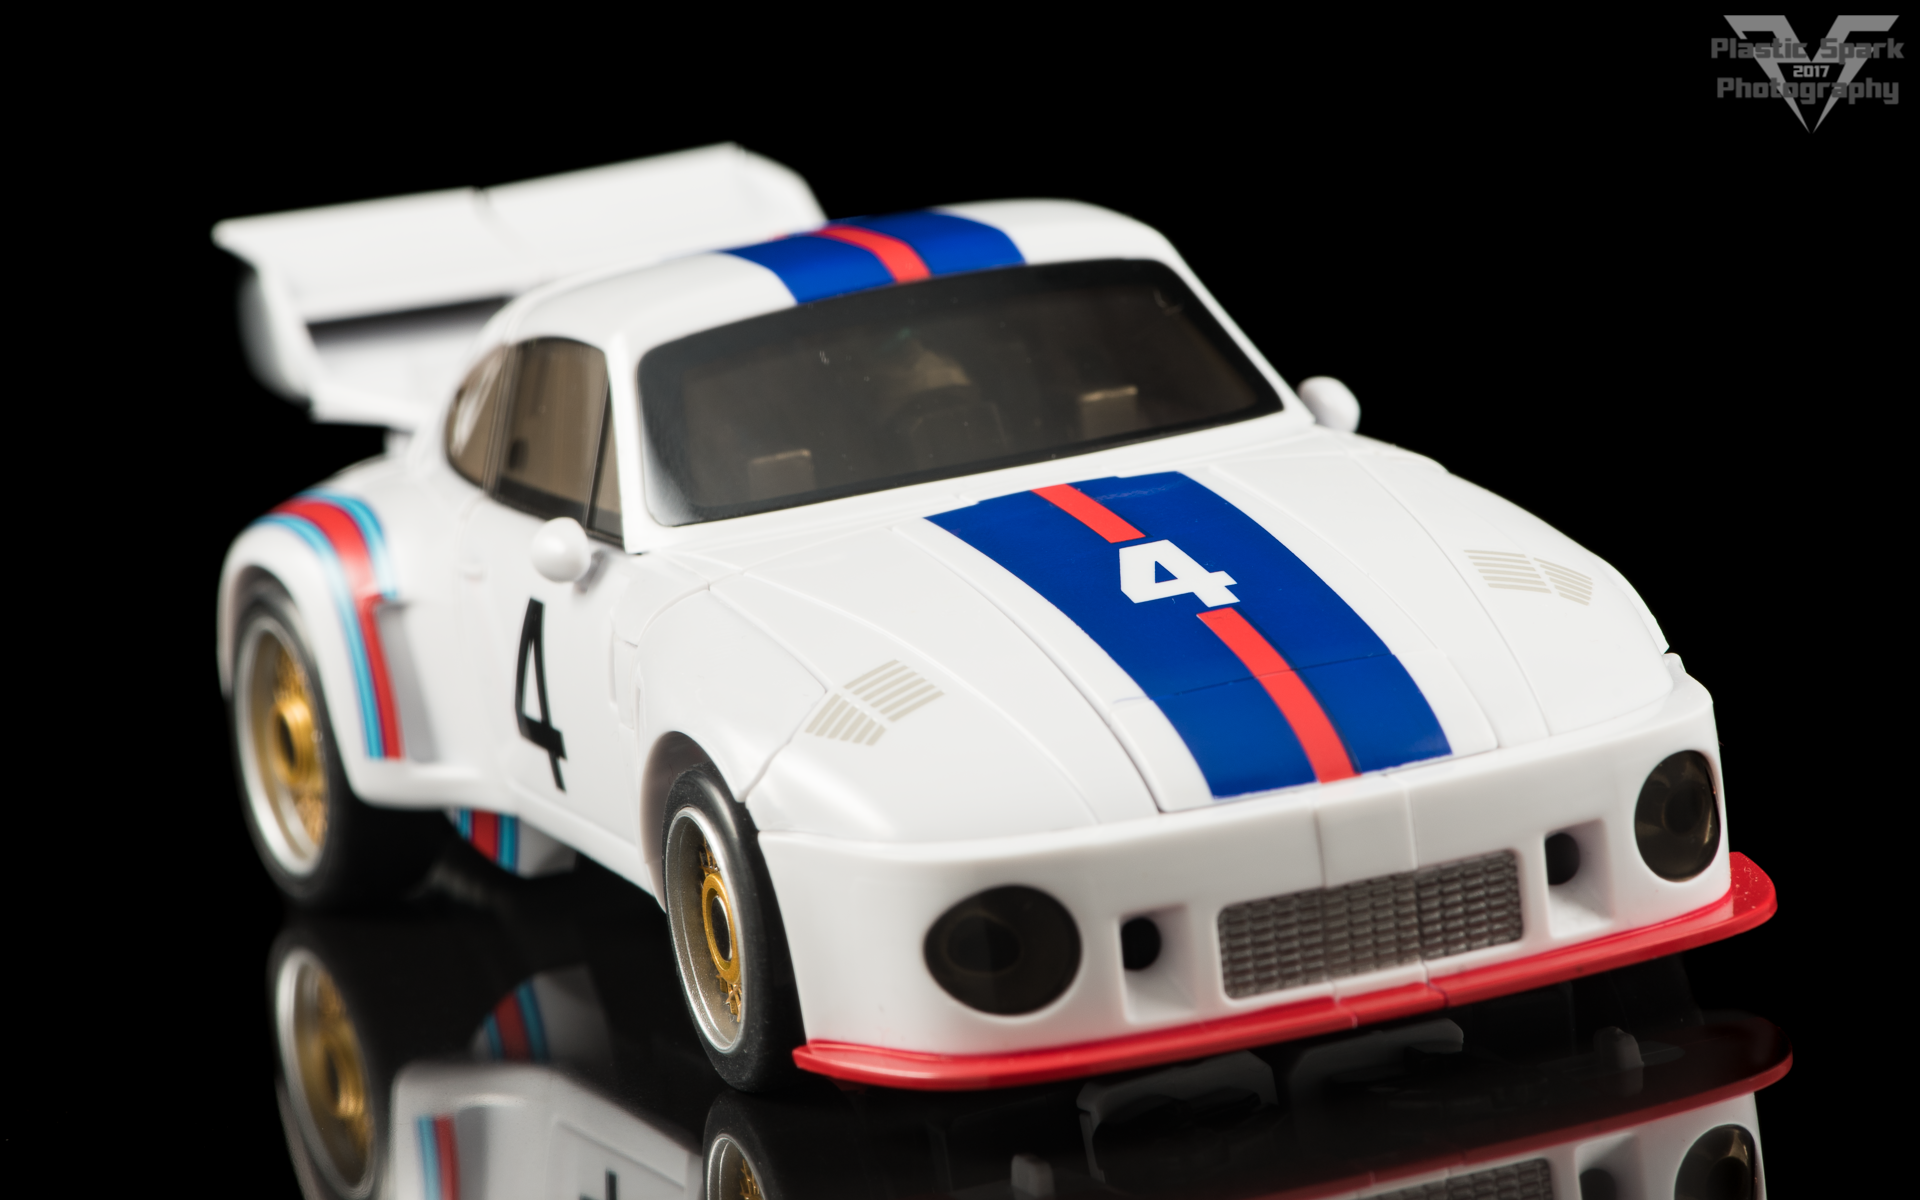 MakeToys-Re-Master-MTRM-09-Downbeat--(28-of-42).png